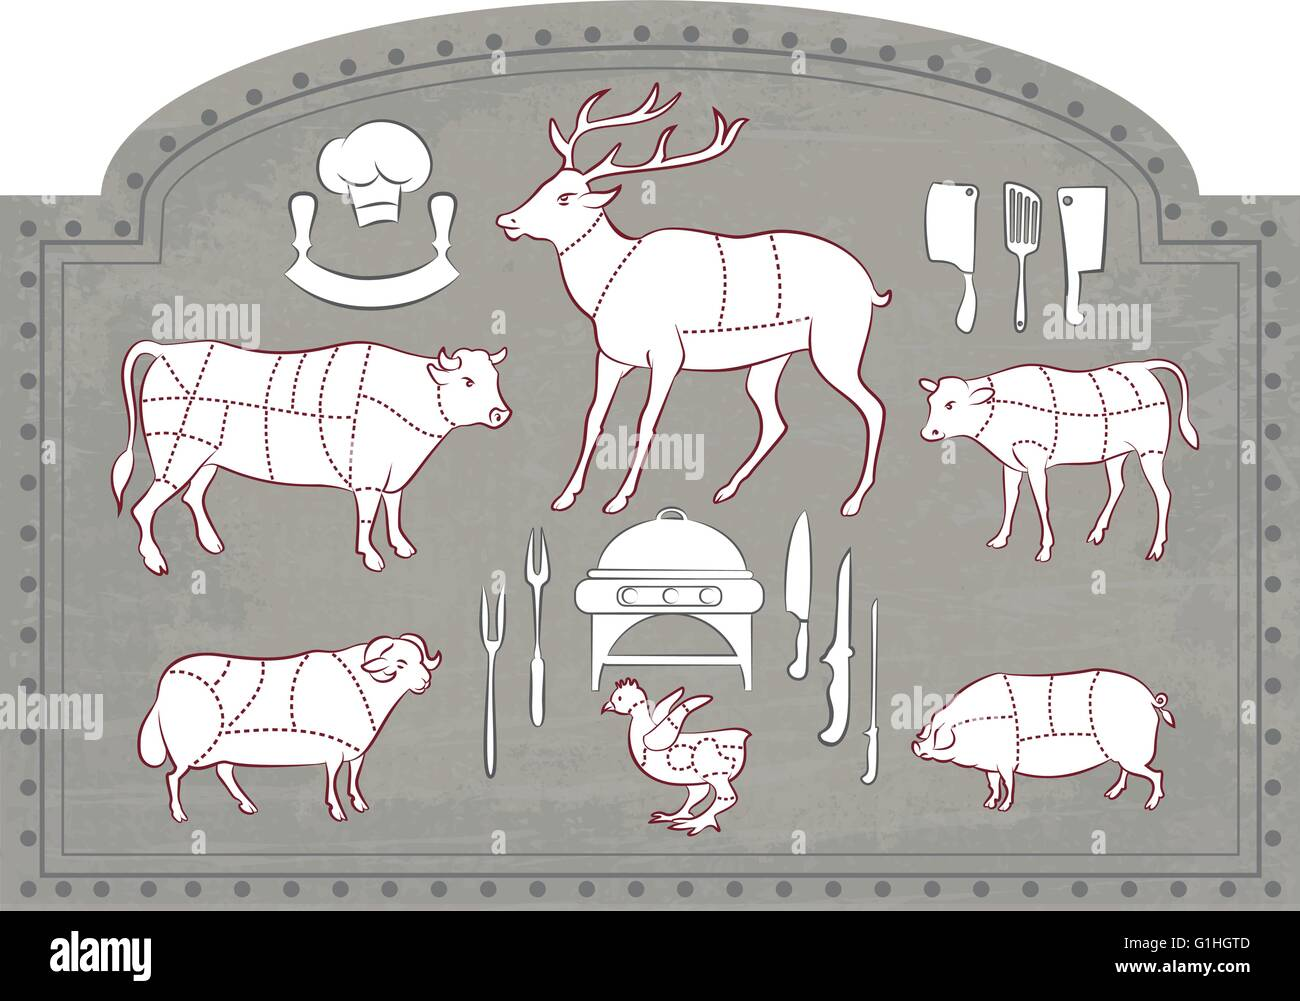 Vector illustration of Diagram Guide for Cutting Meat in Vintage Style - Stock Image